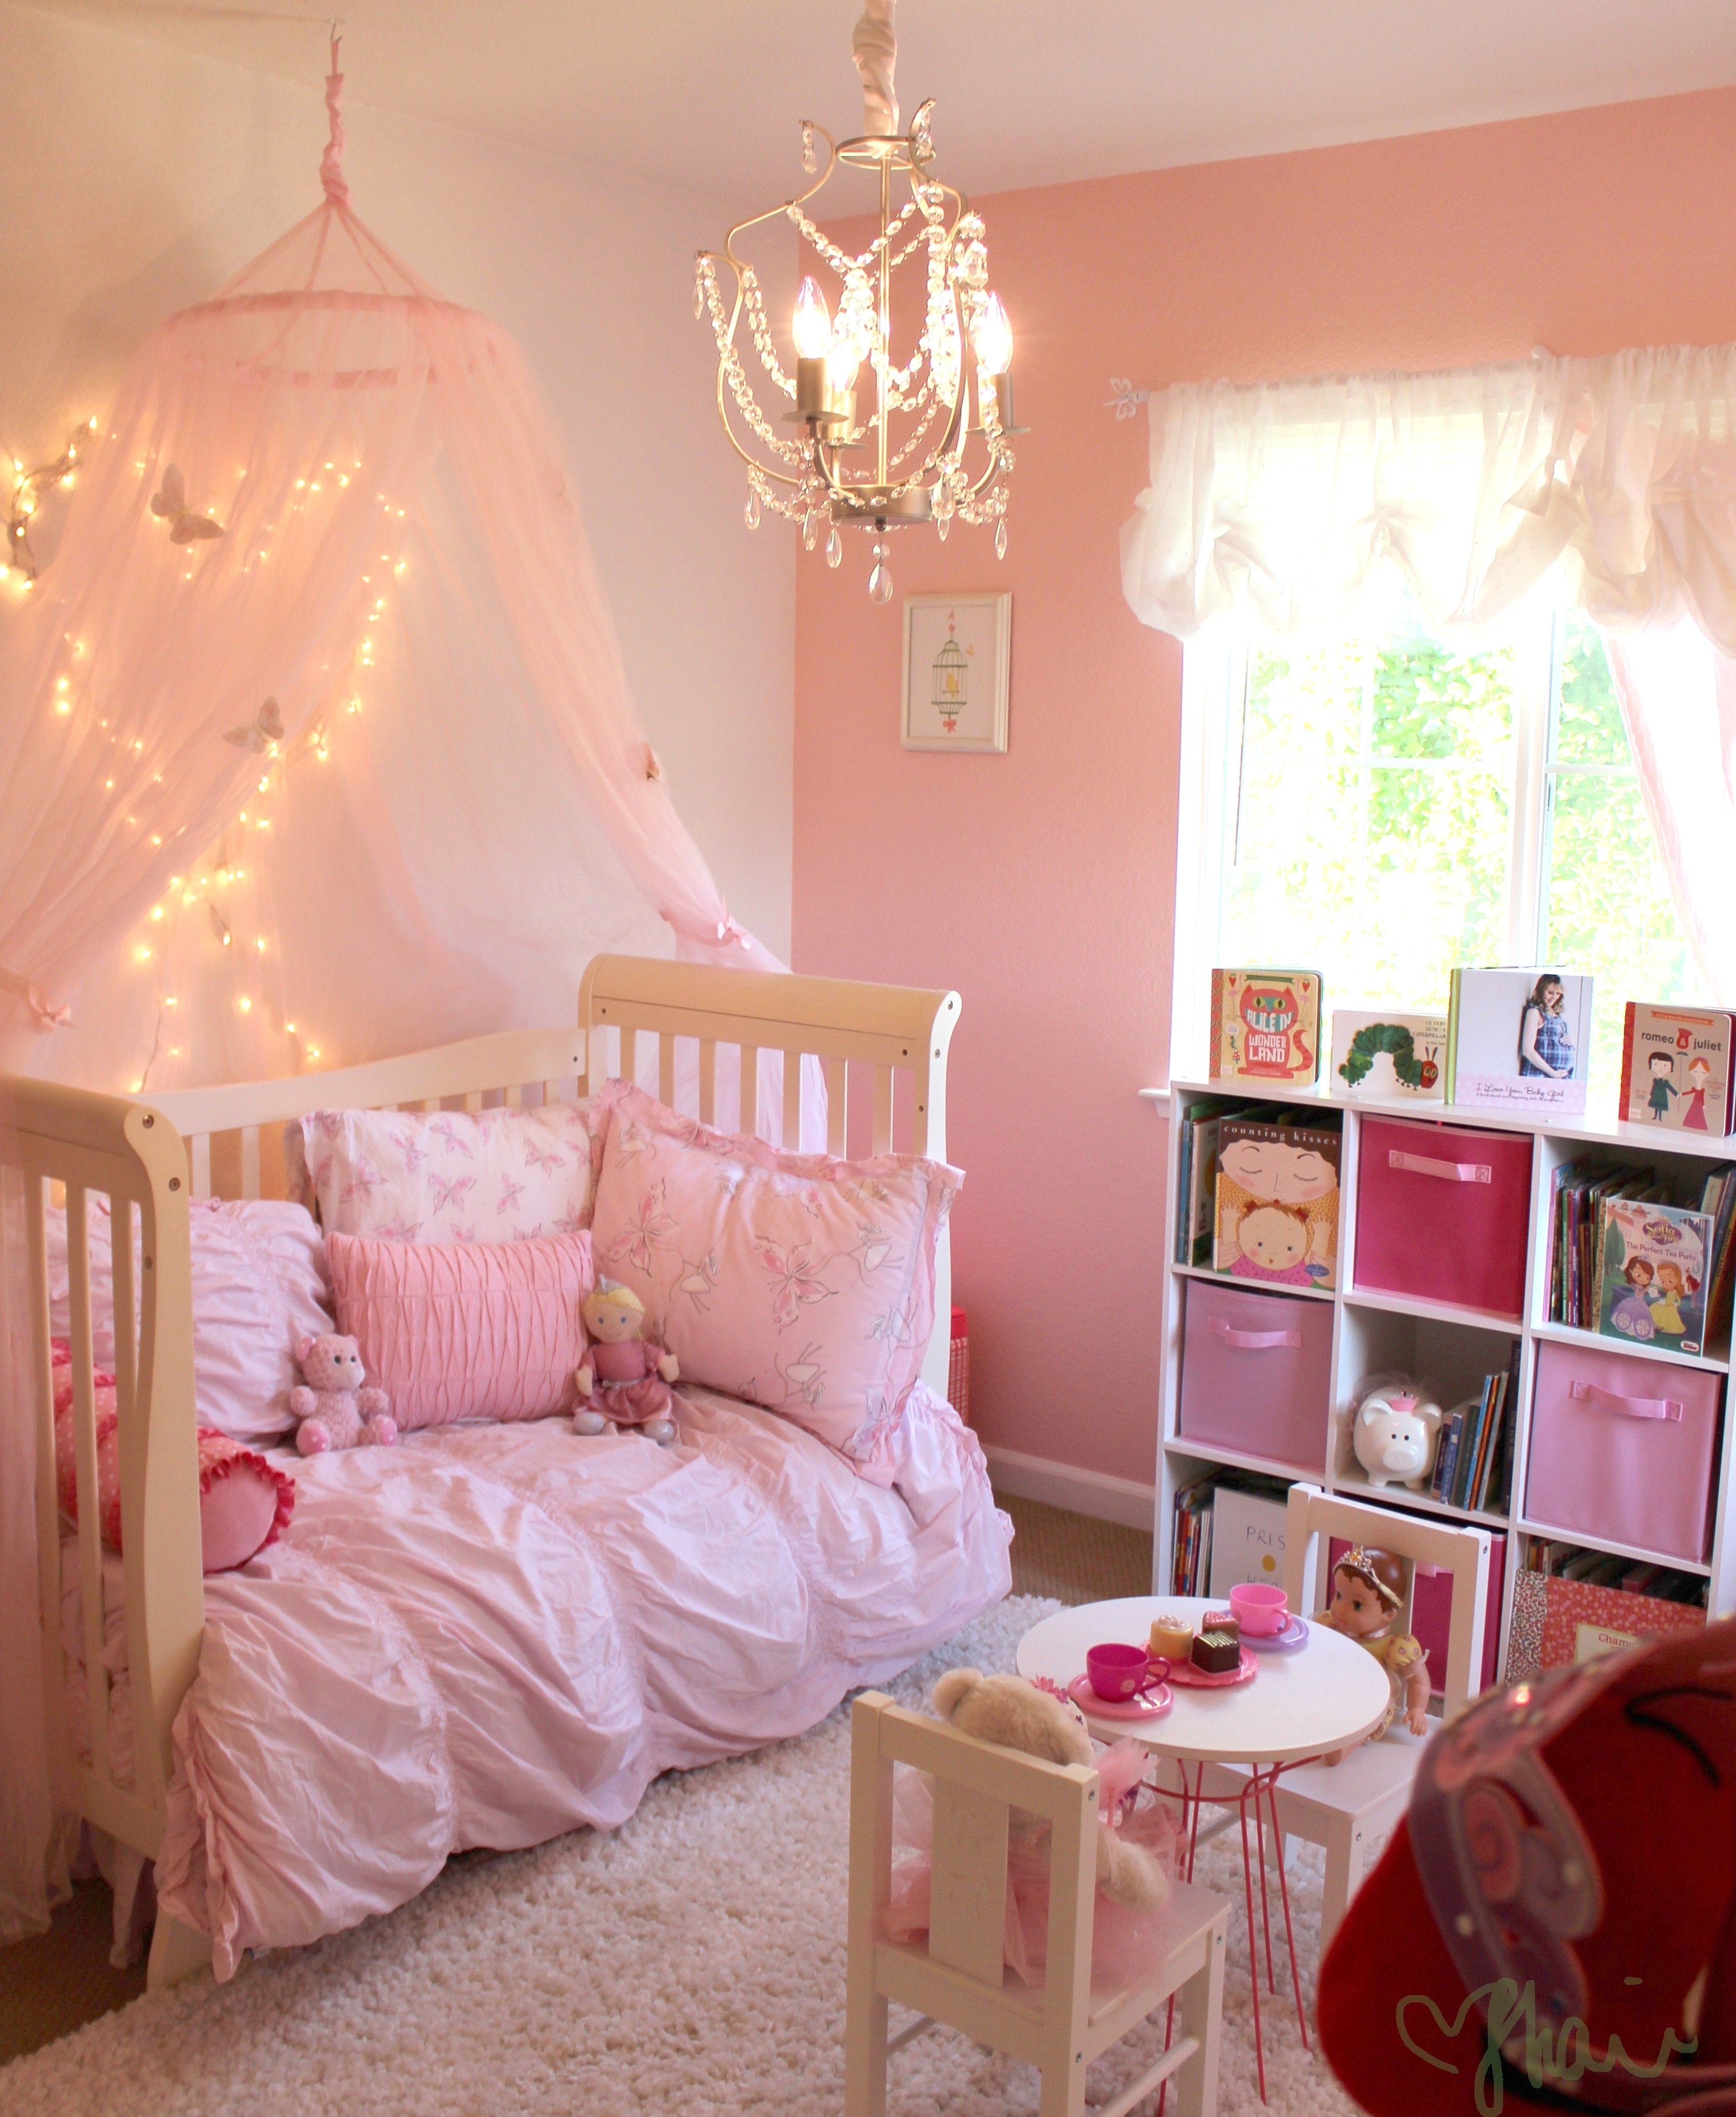 10 Great Little Girl Room Ideas Pinterest mesmerizing toddler girl room ideas together with little rooms on 2020